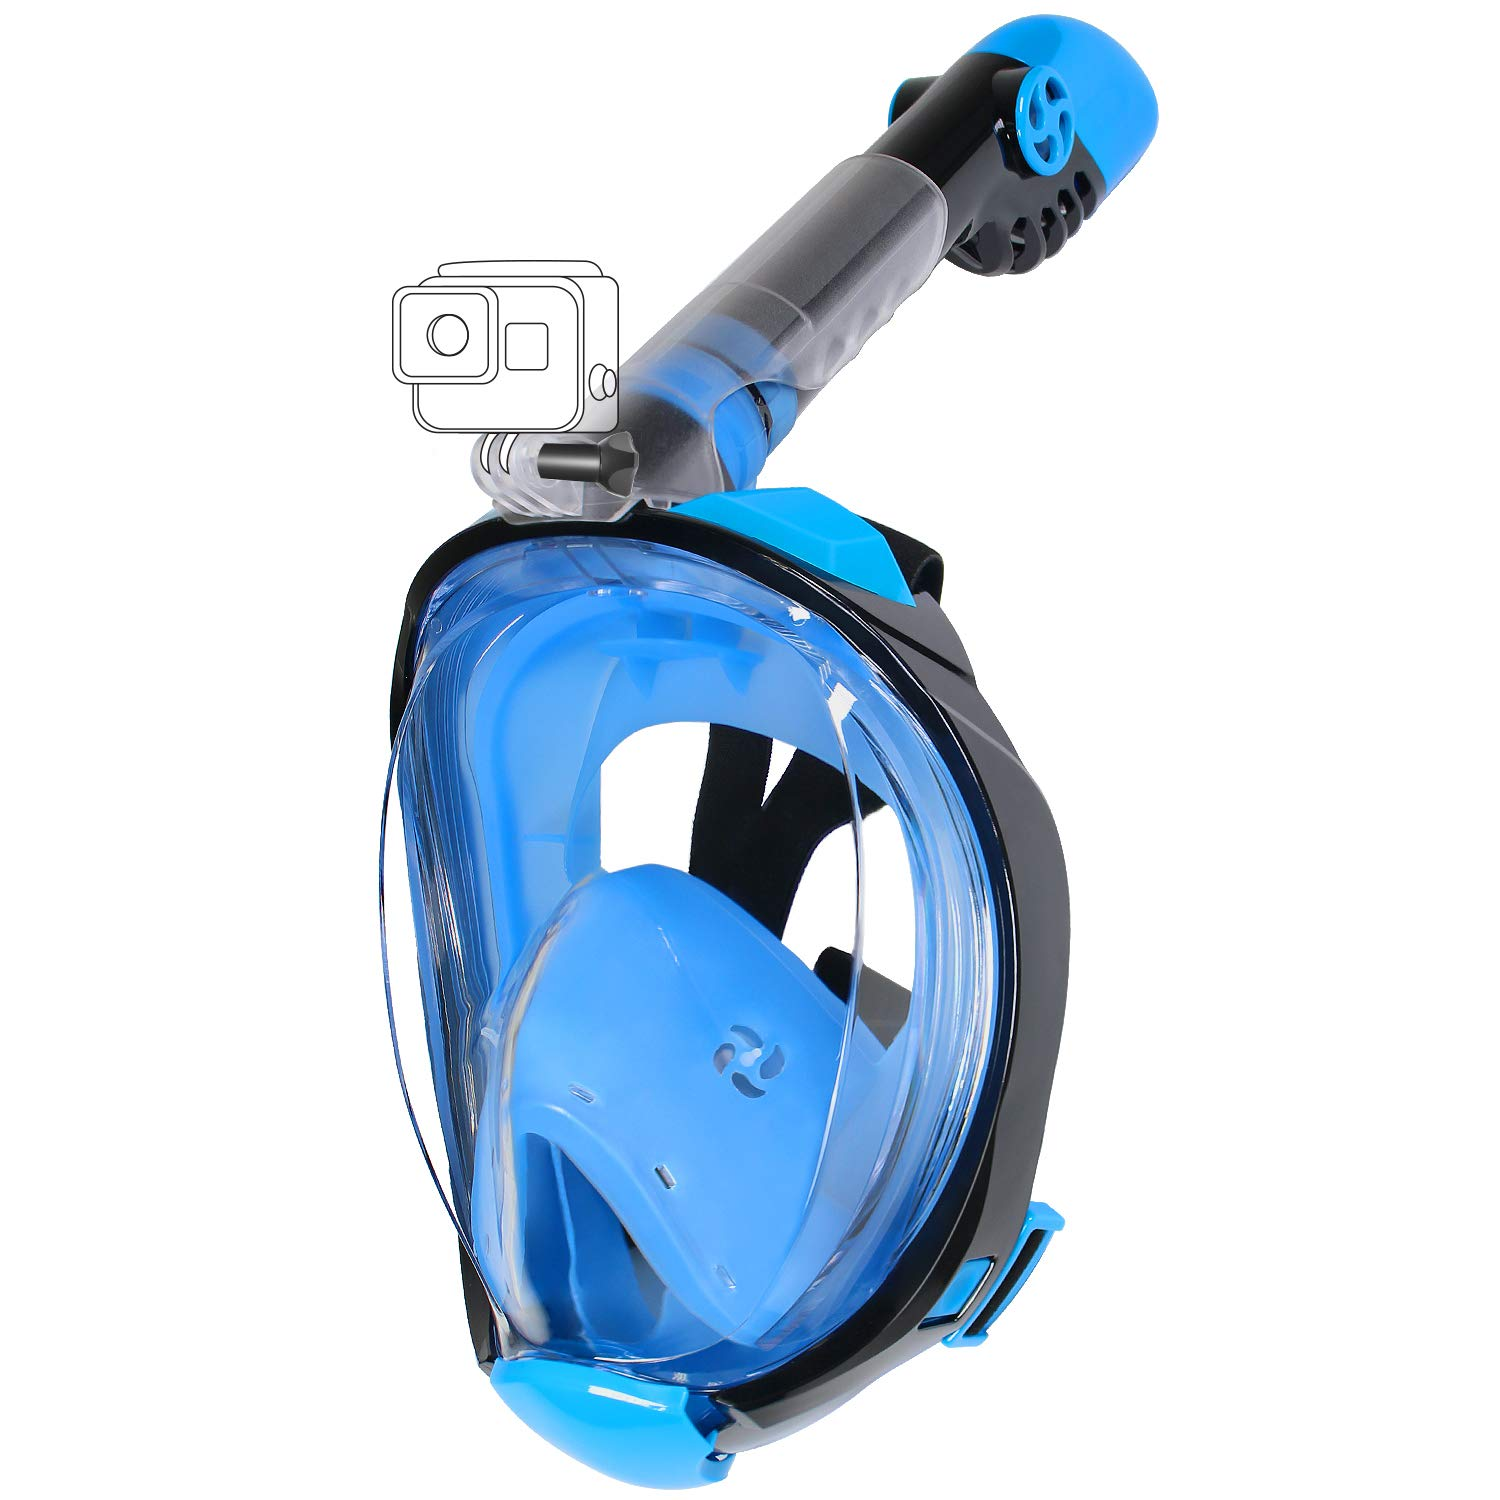 Awesome quality for a full face snorkel, love it!